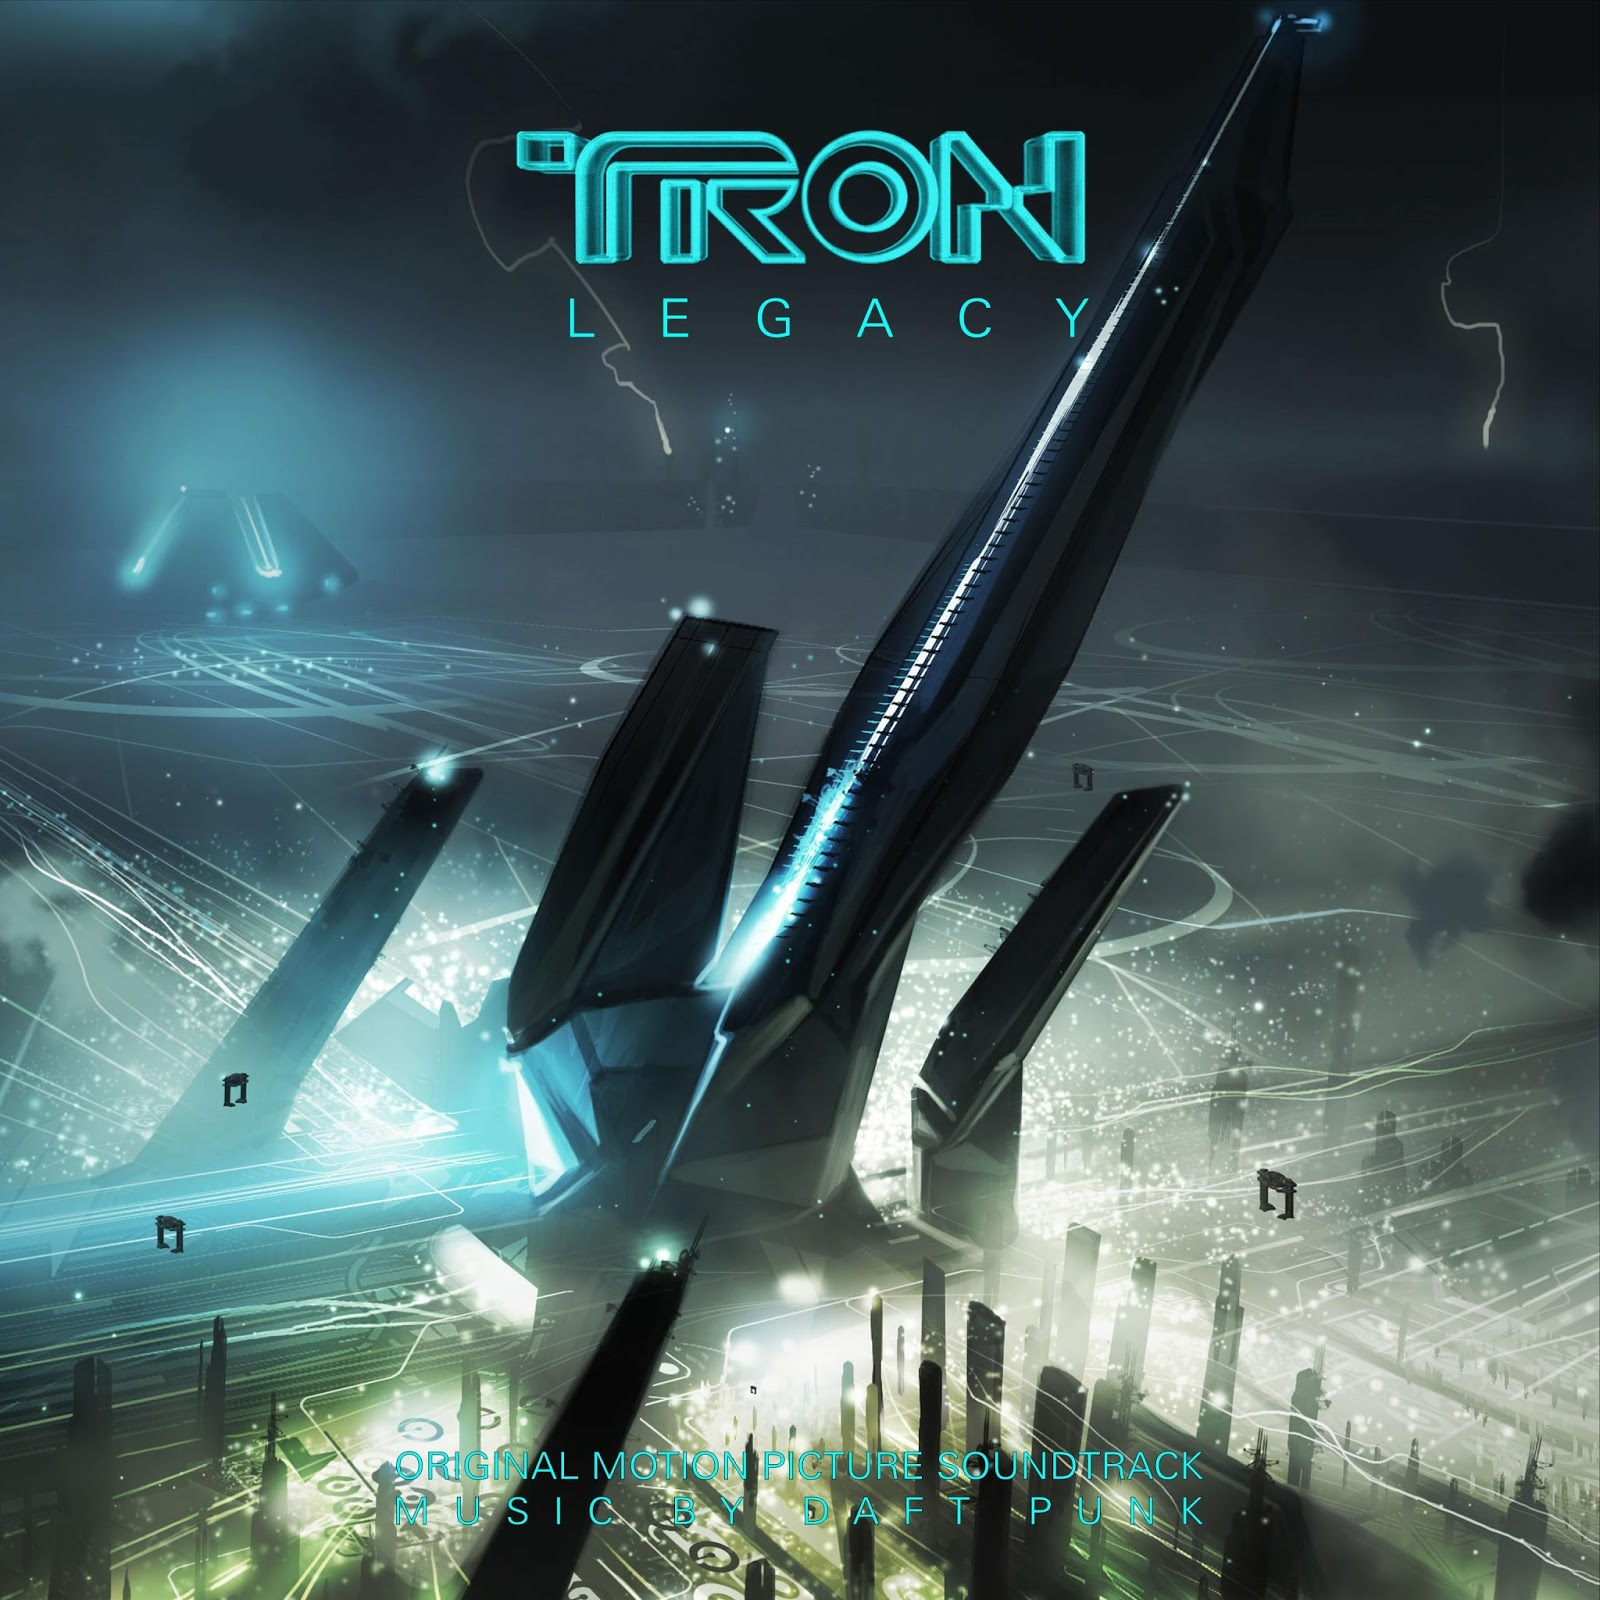 le blog de chief dundee: tron legacy complete film edit - daft punk